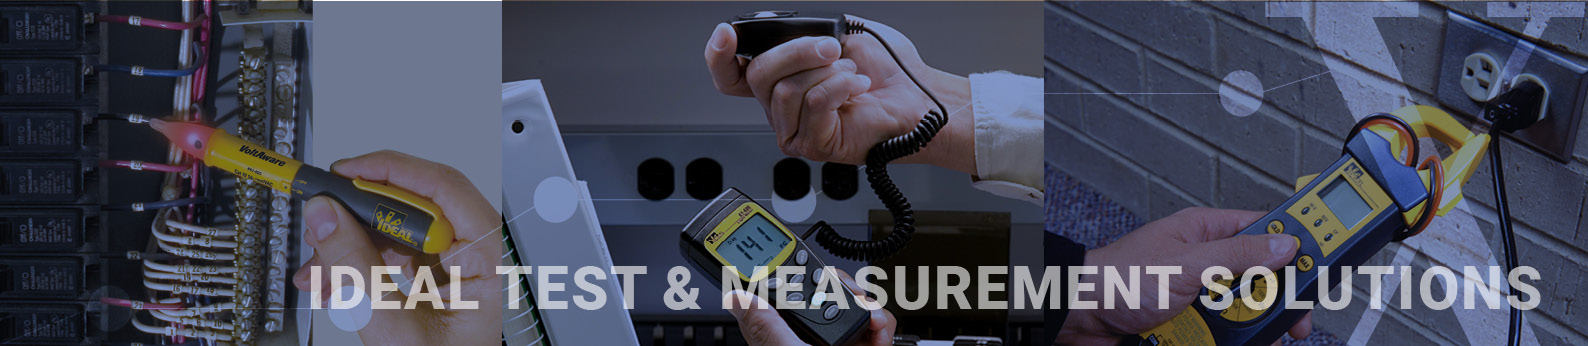 Connexion and Ideal Test & Measurement